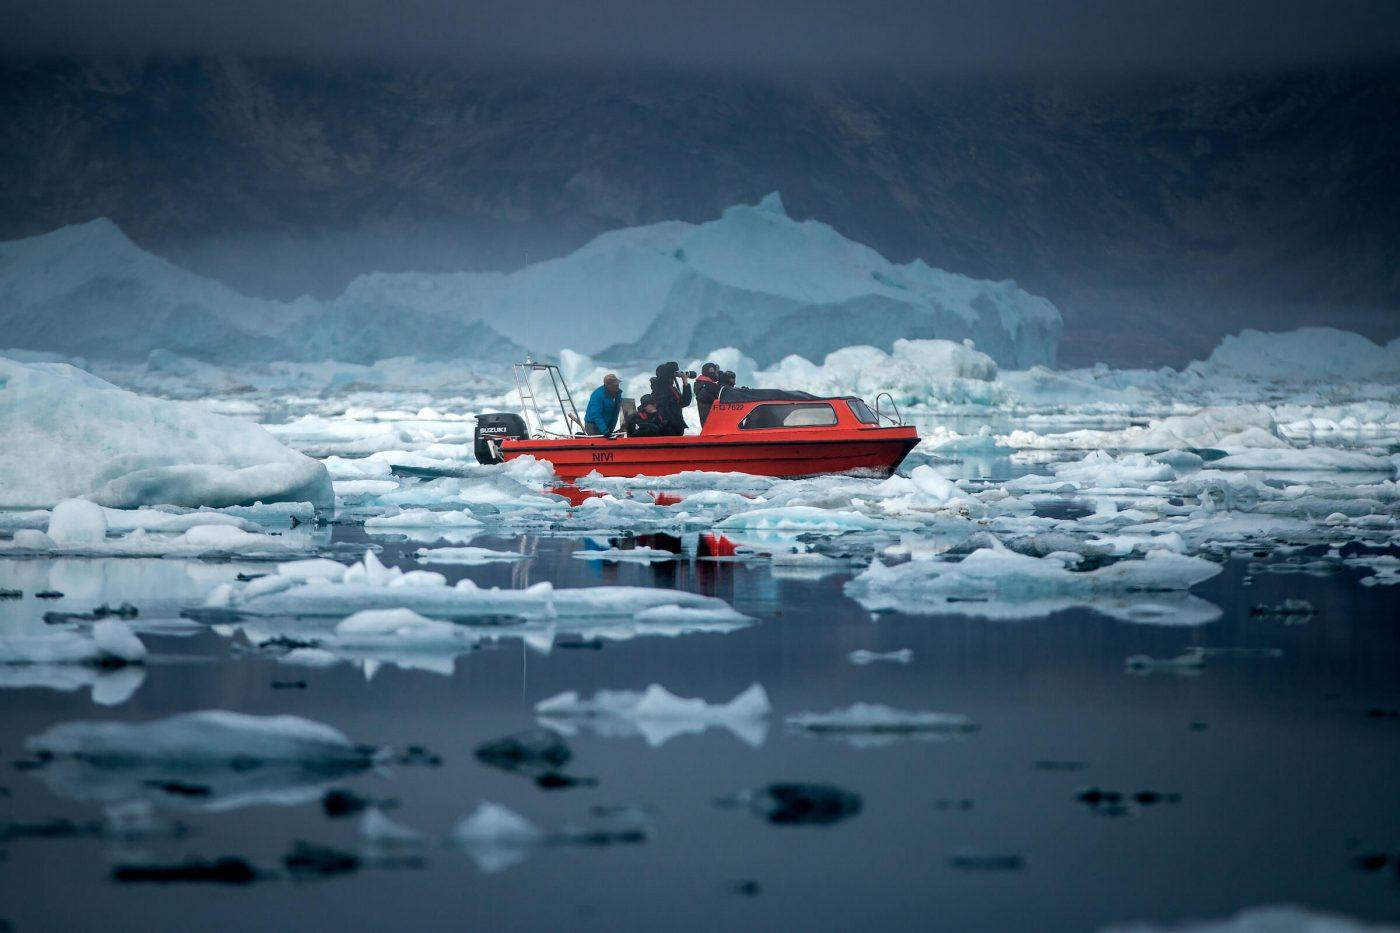 People on a boat taking photos of icebergs and mountains. Photo by Arctic Dream, Visit Greenland